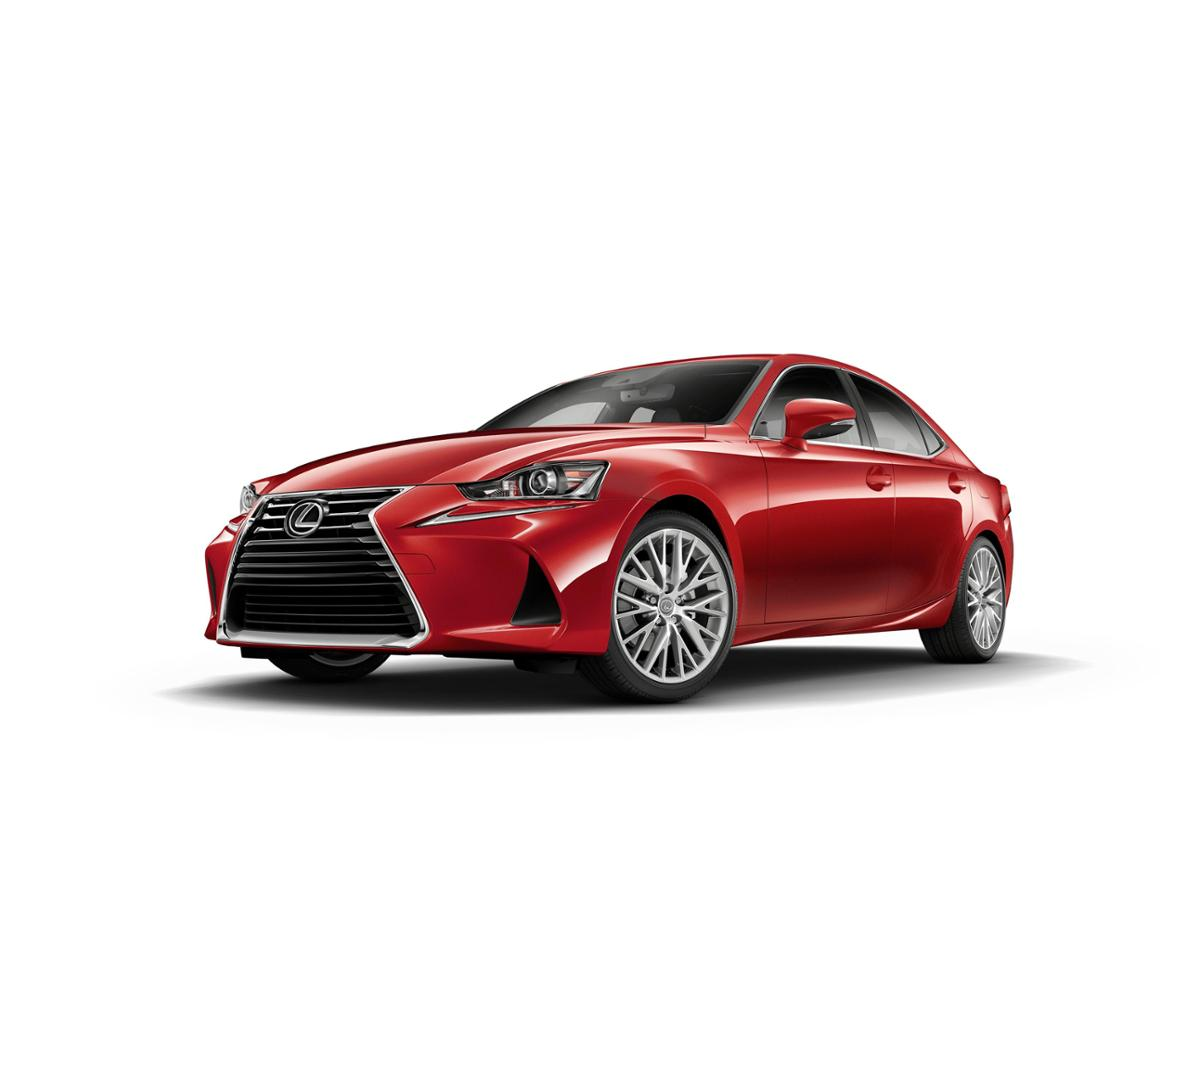 new 2017 lexus is turbo redline for sale in houston pearland league city tx. Black Bedroom Furniture Sets. Home Design Ideas